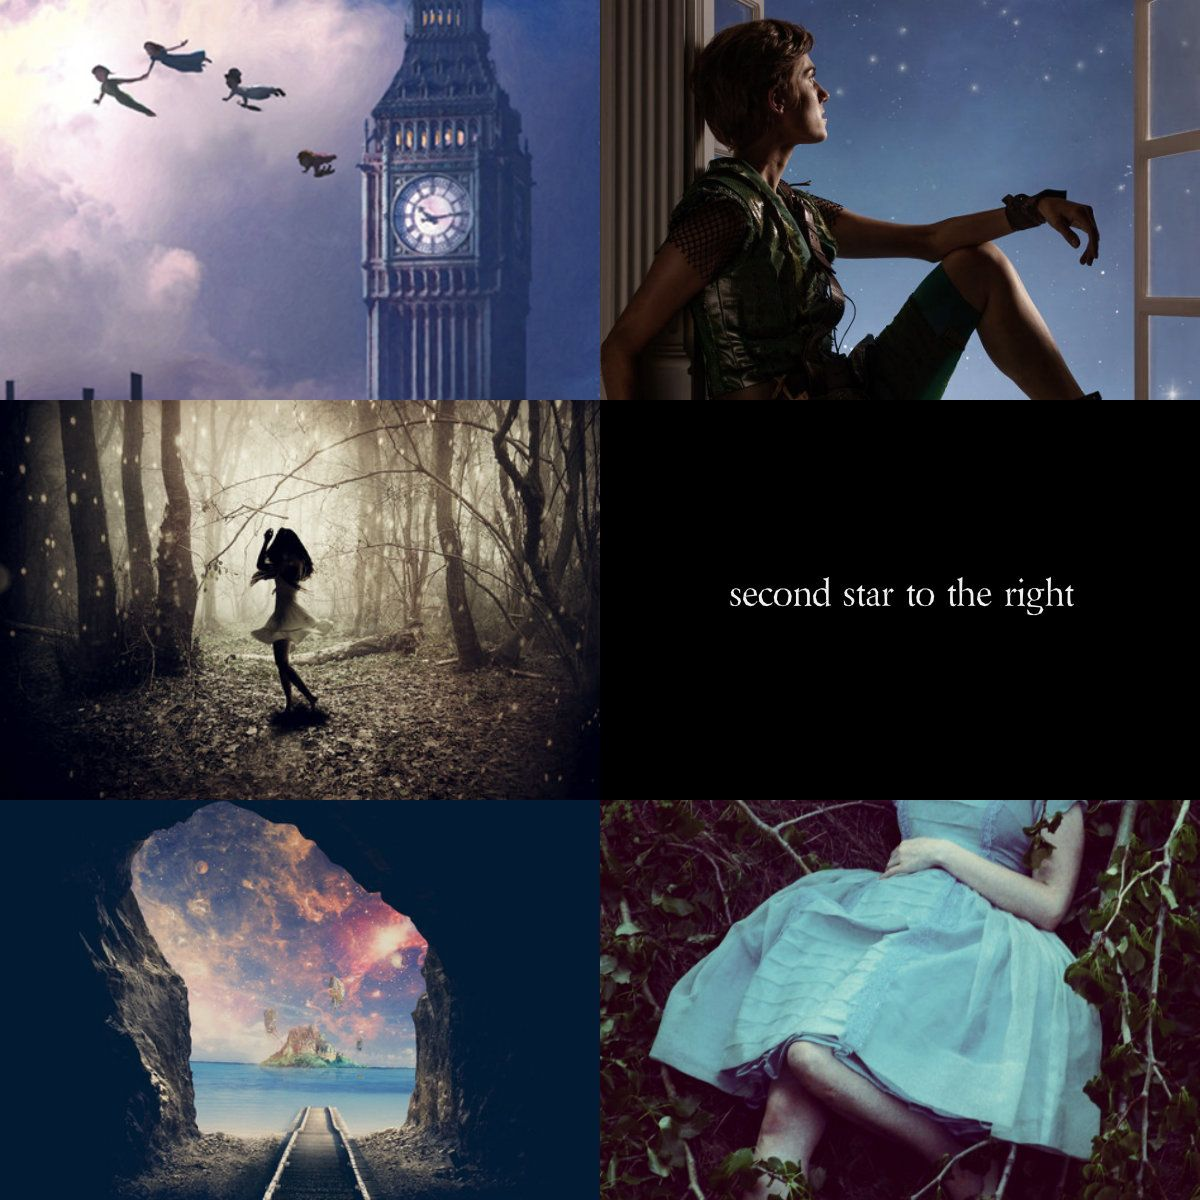 Disney Aesthetic Peter Pan All This Has Happened With Images